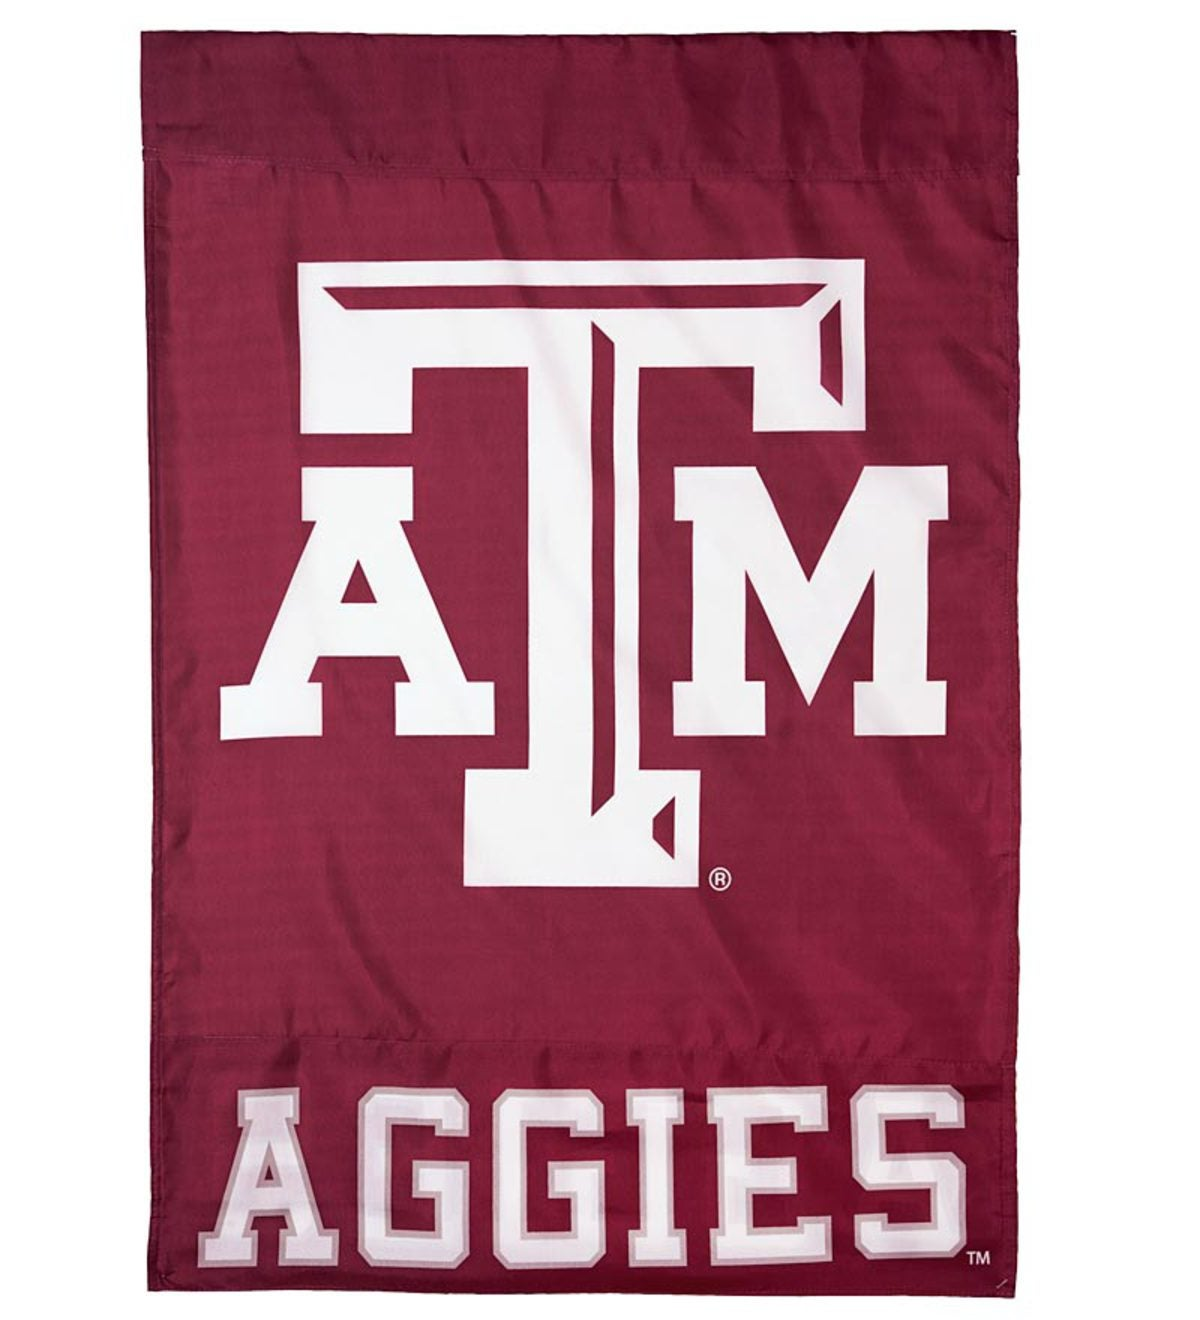 2 Sided Collegiate Flags - Texas A & M University